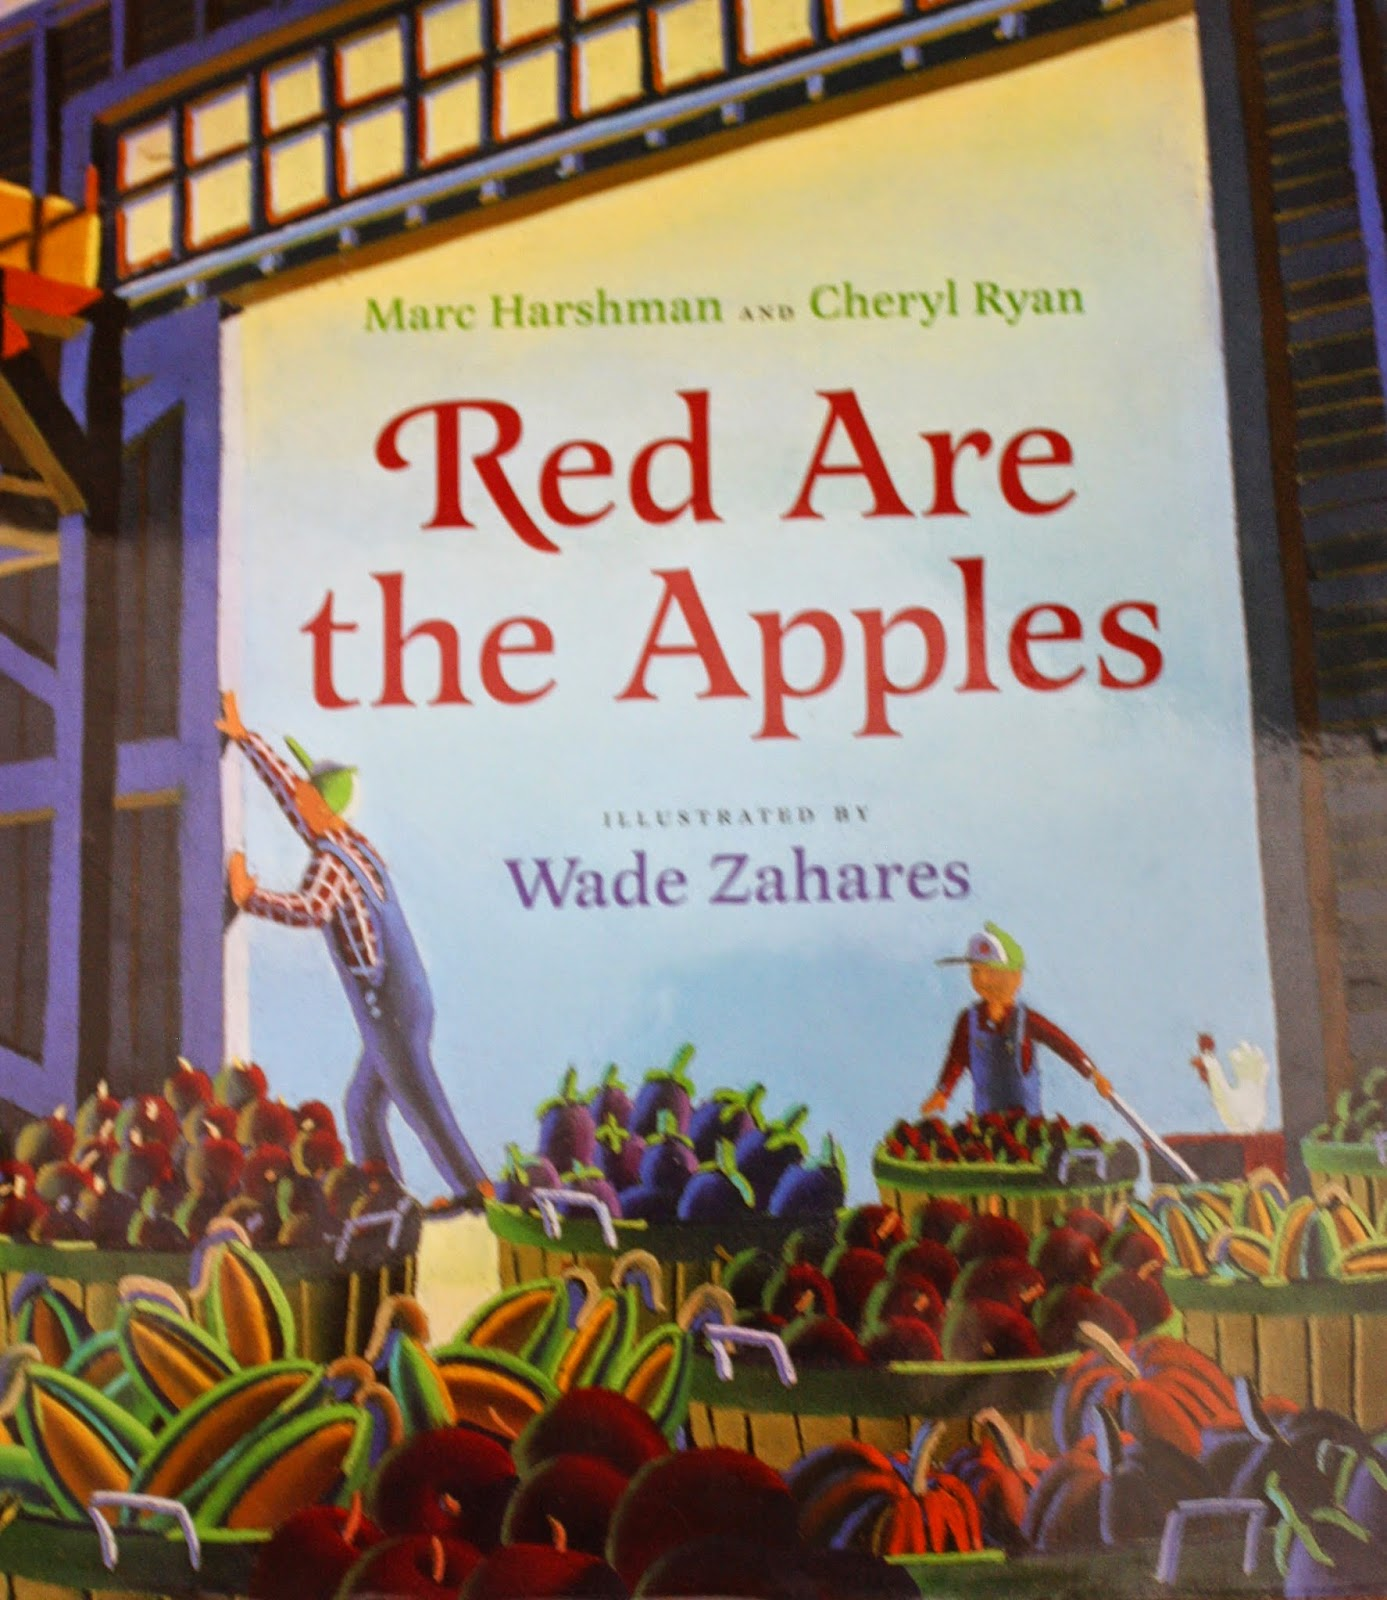 http://www.amazon.com/Red-Are-Apples-Marc-Harshman/dp/0152060650/ref=sr_1_1?ie=UTF8&qid=1411511563&sr=8-1&keywords=Red+are+the+apples